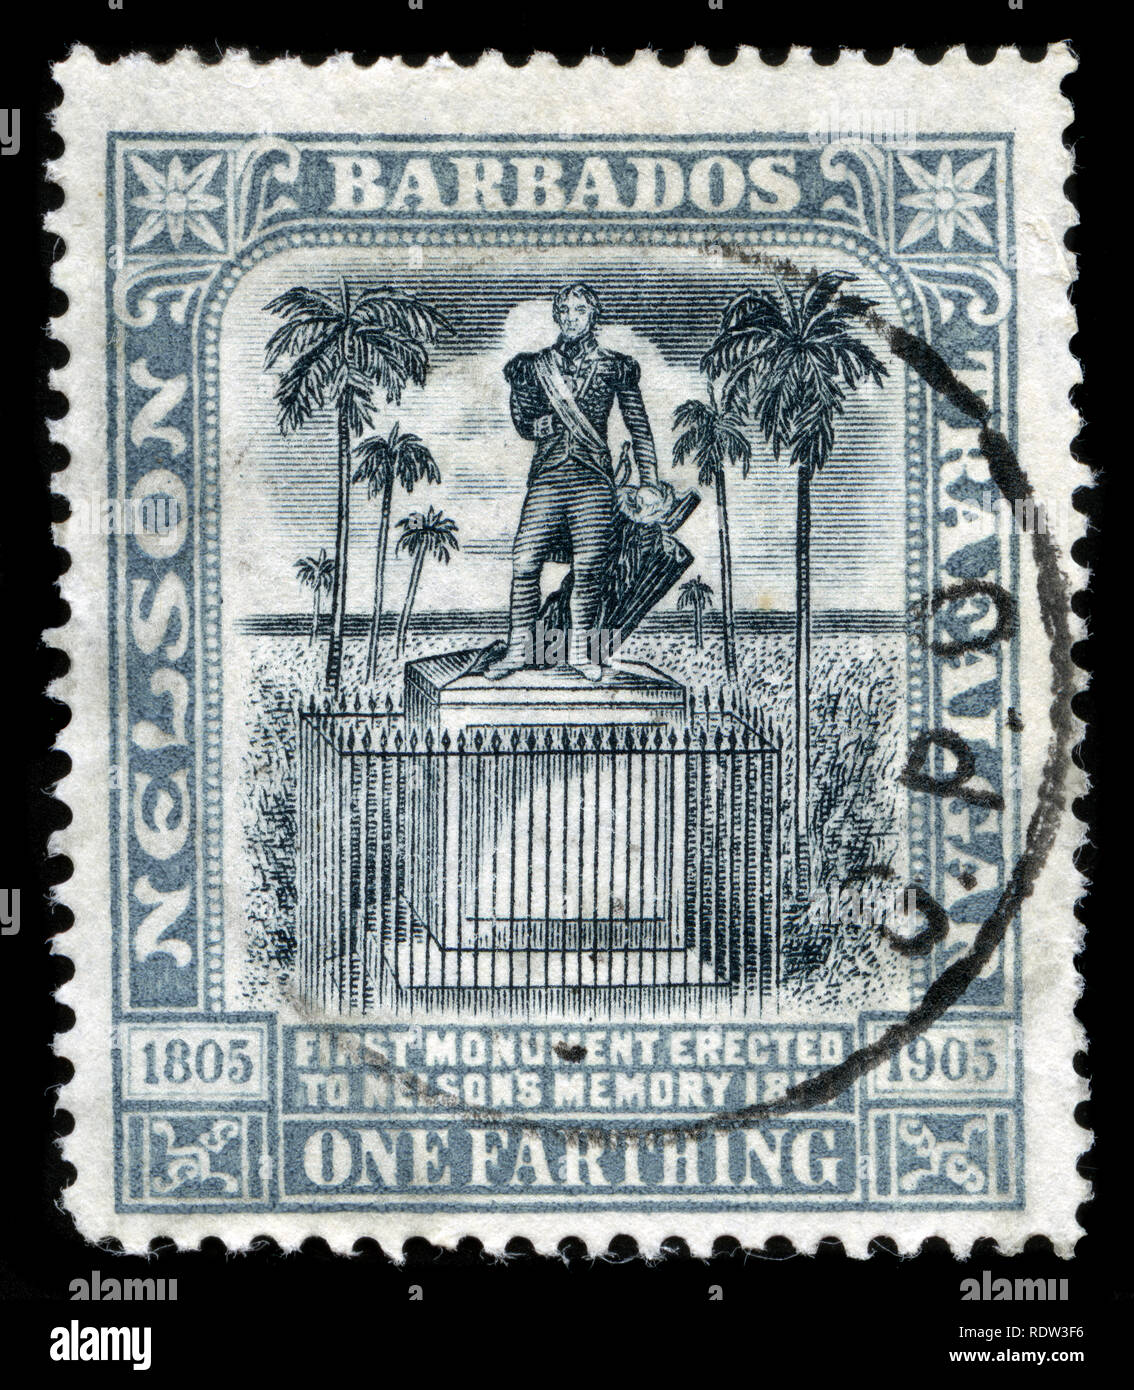 Postage stamp from Barbados in the Nelson Centenary series issued in 1906 - Stock Image